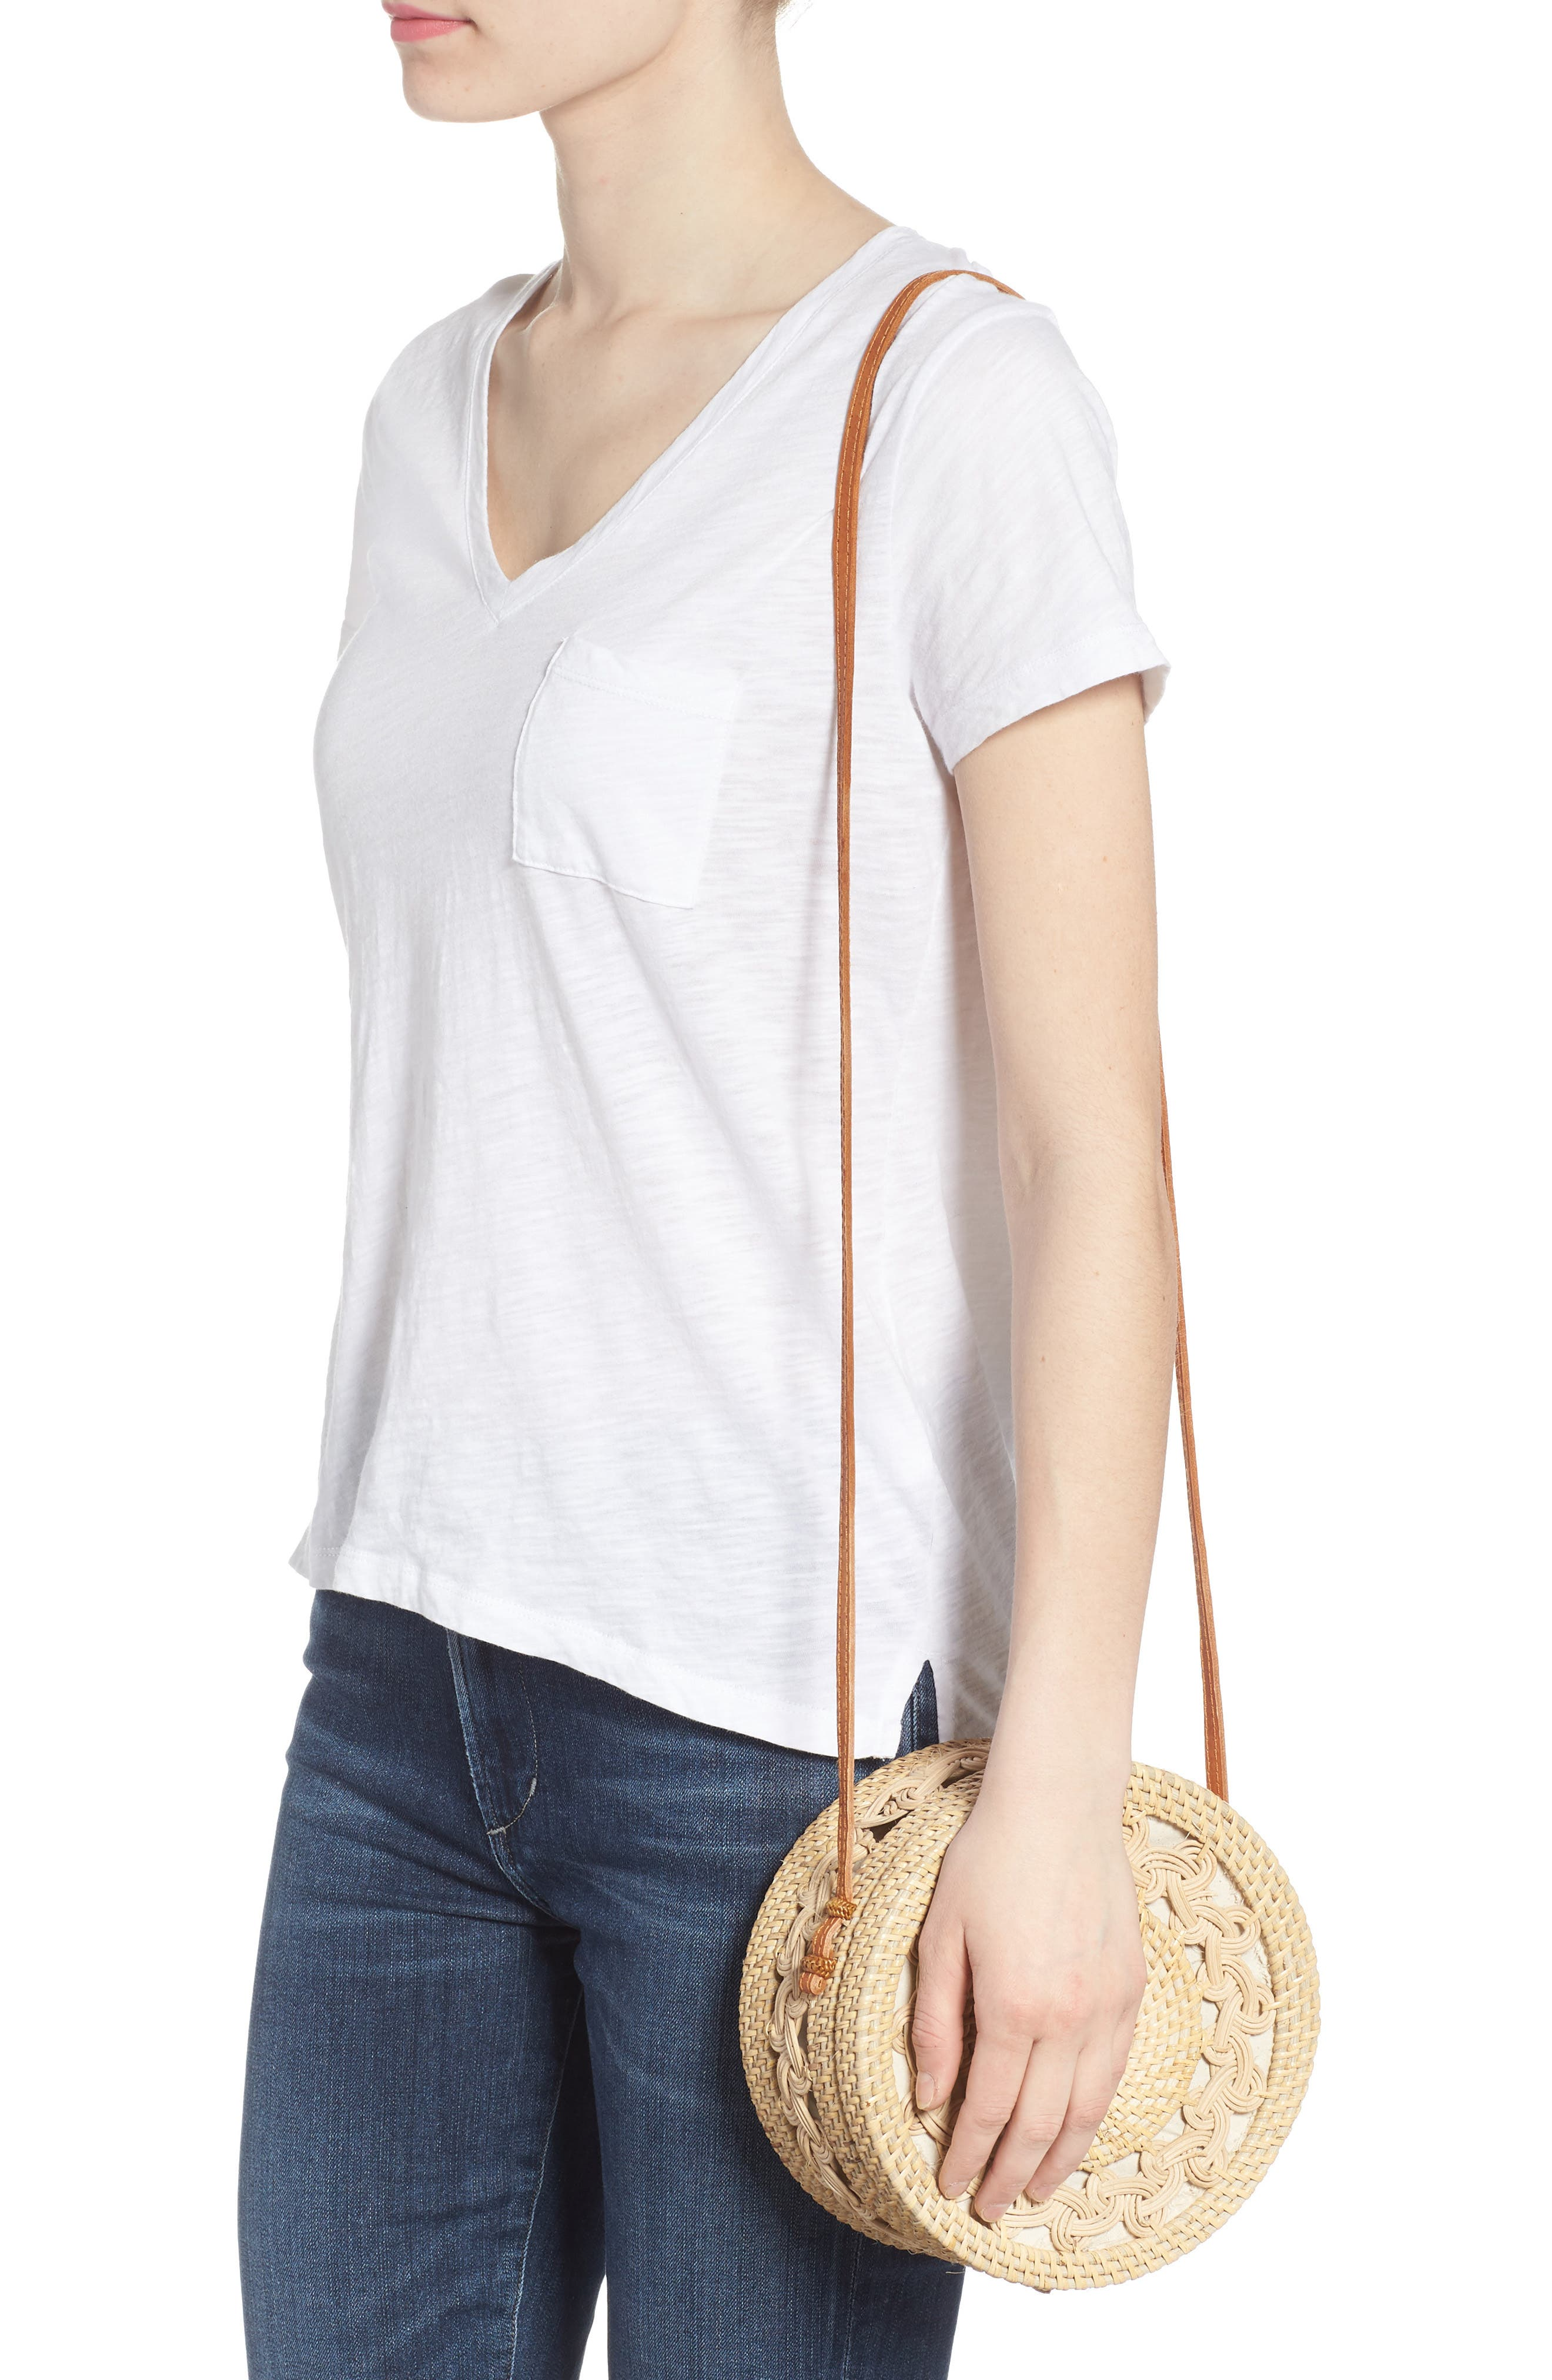 Woven Rattan Circle Crossbody Bag,                             Alternate thumbnail 2, color,                             LIGHTER TAN/ NATURAL